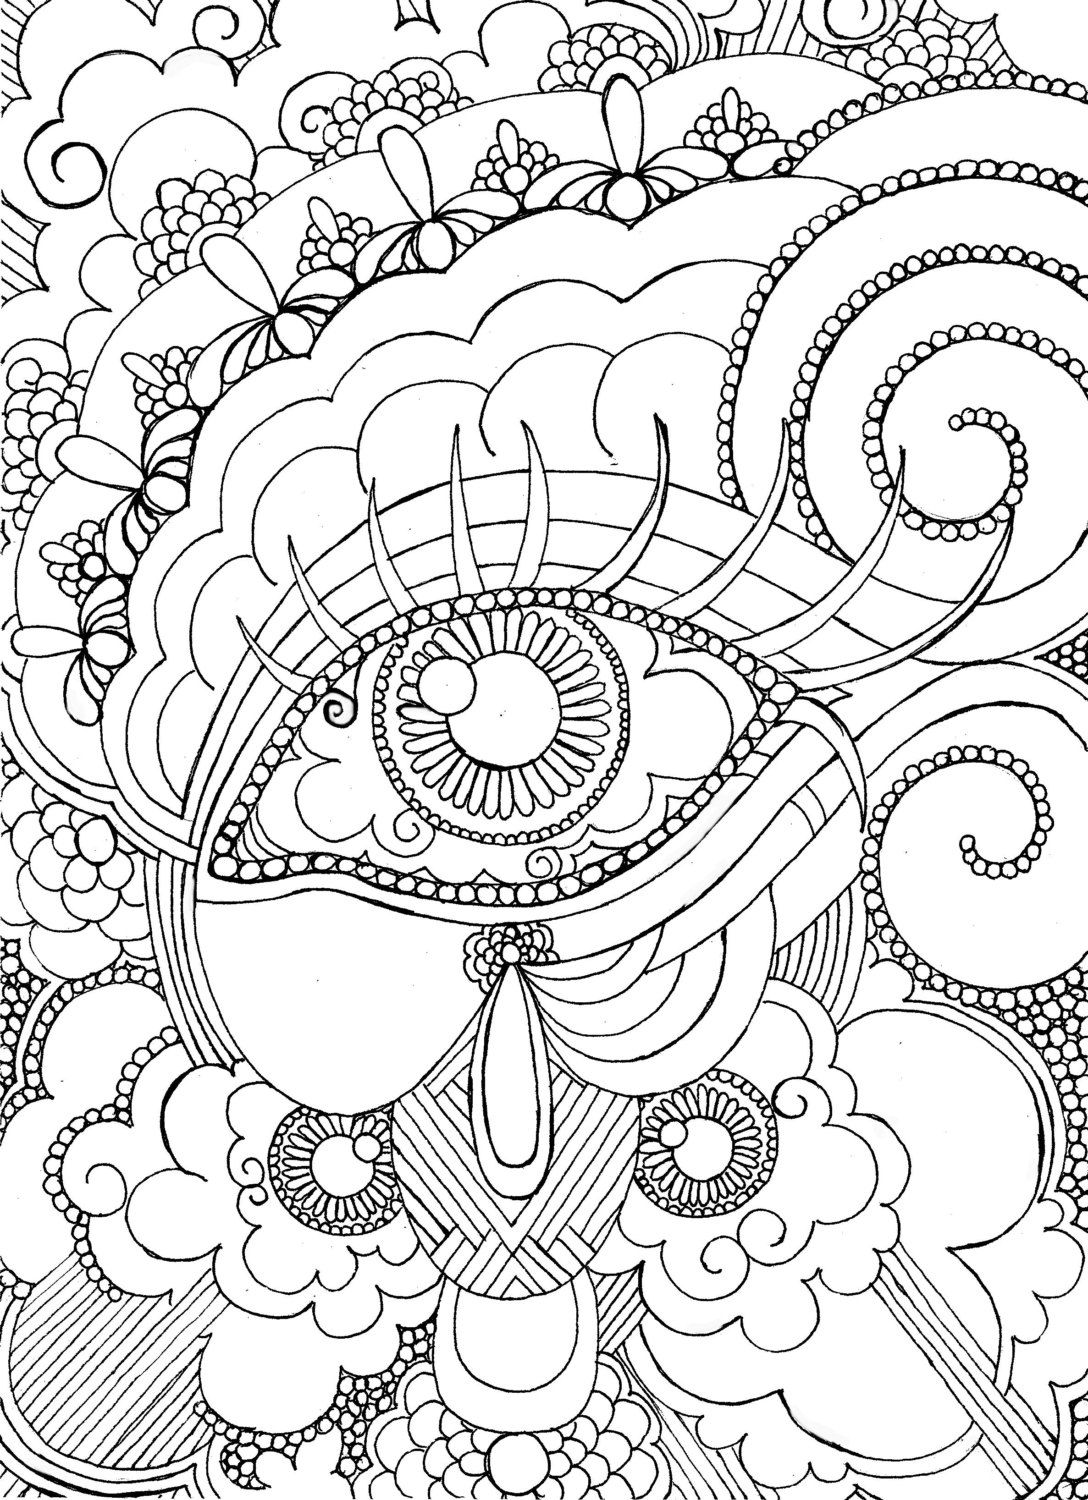 Eye Want To Be Colored Adult Coloring Page by ...Detailed Mandala Coloring Pages For Adults